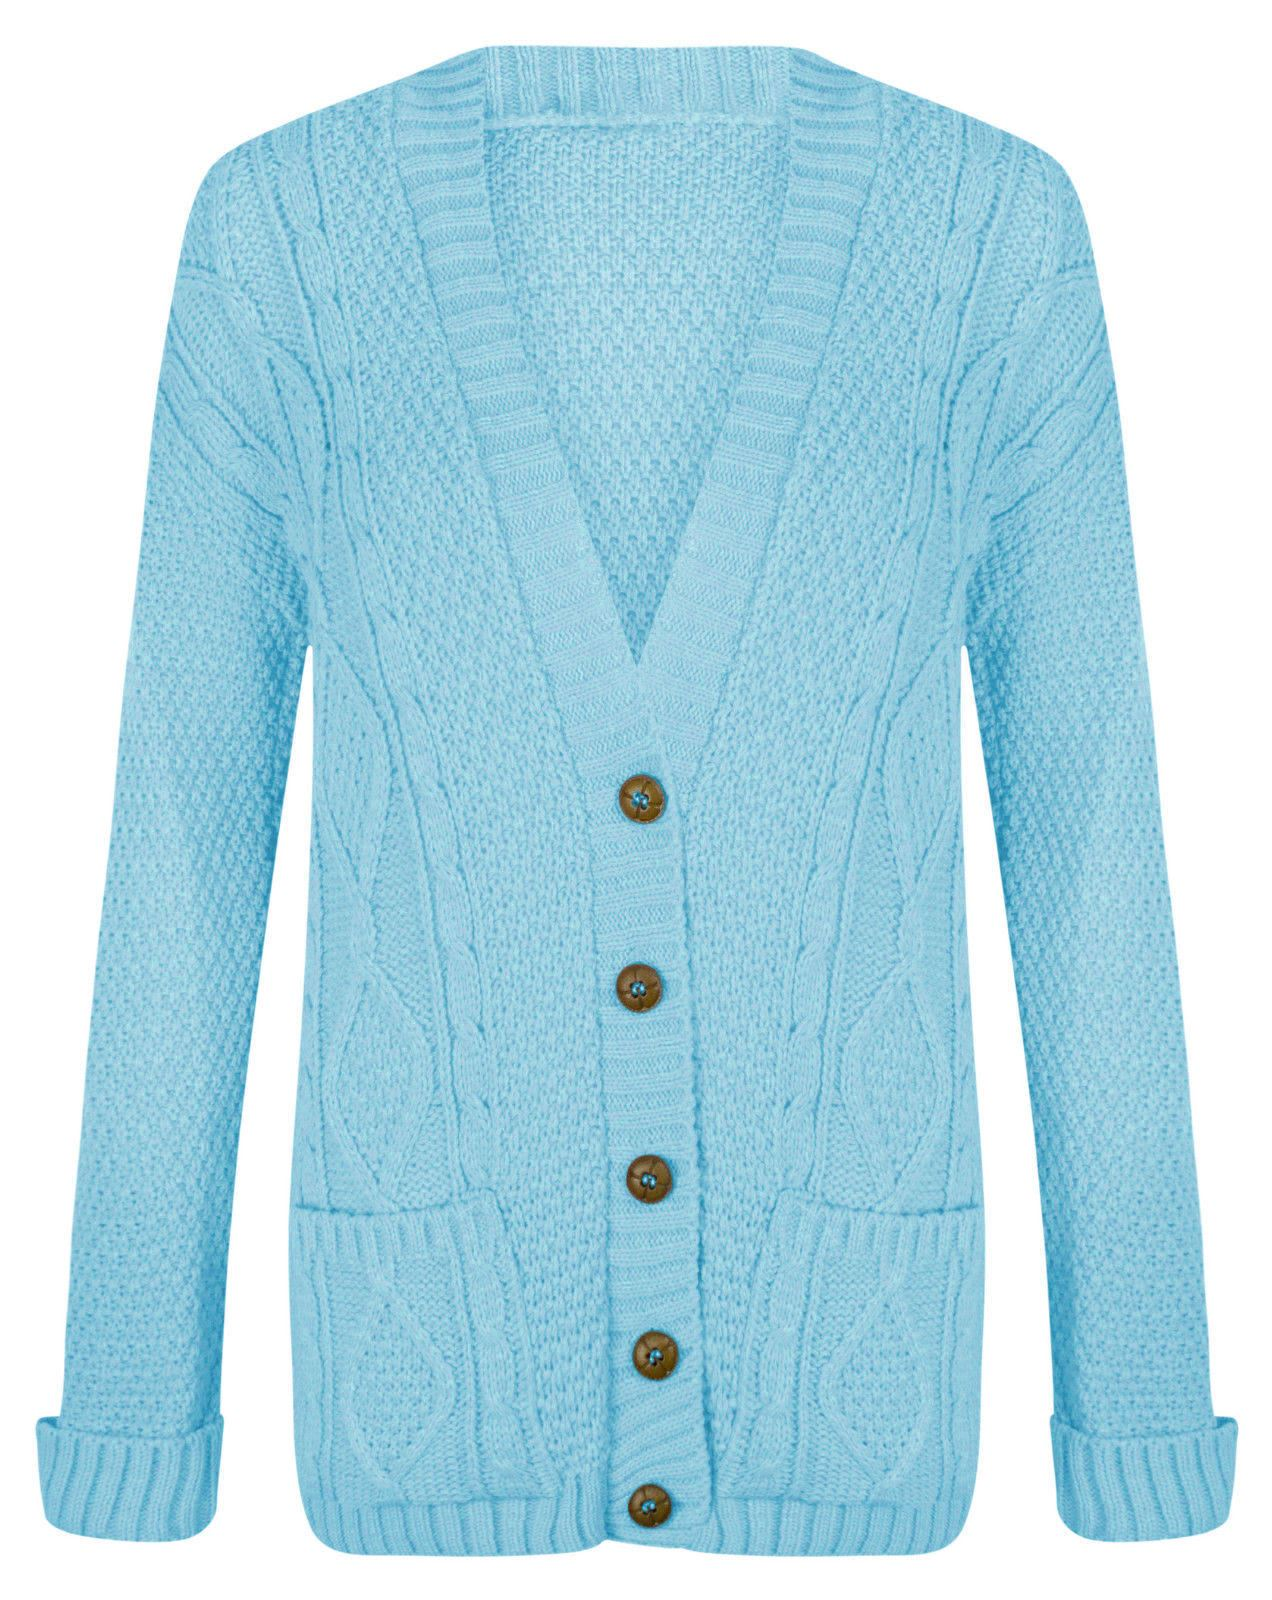 Womens Ladies Chunky Cable Knit Cardigan Button Long ...